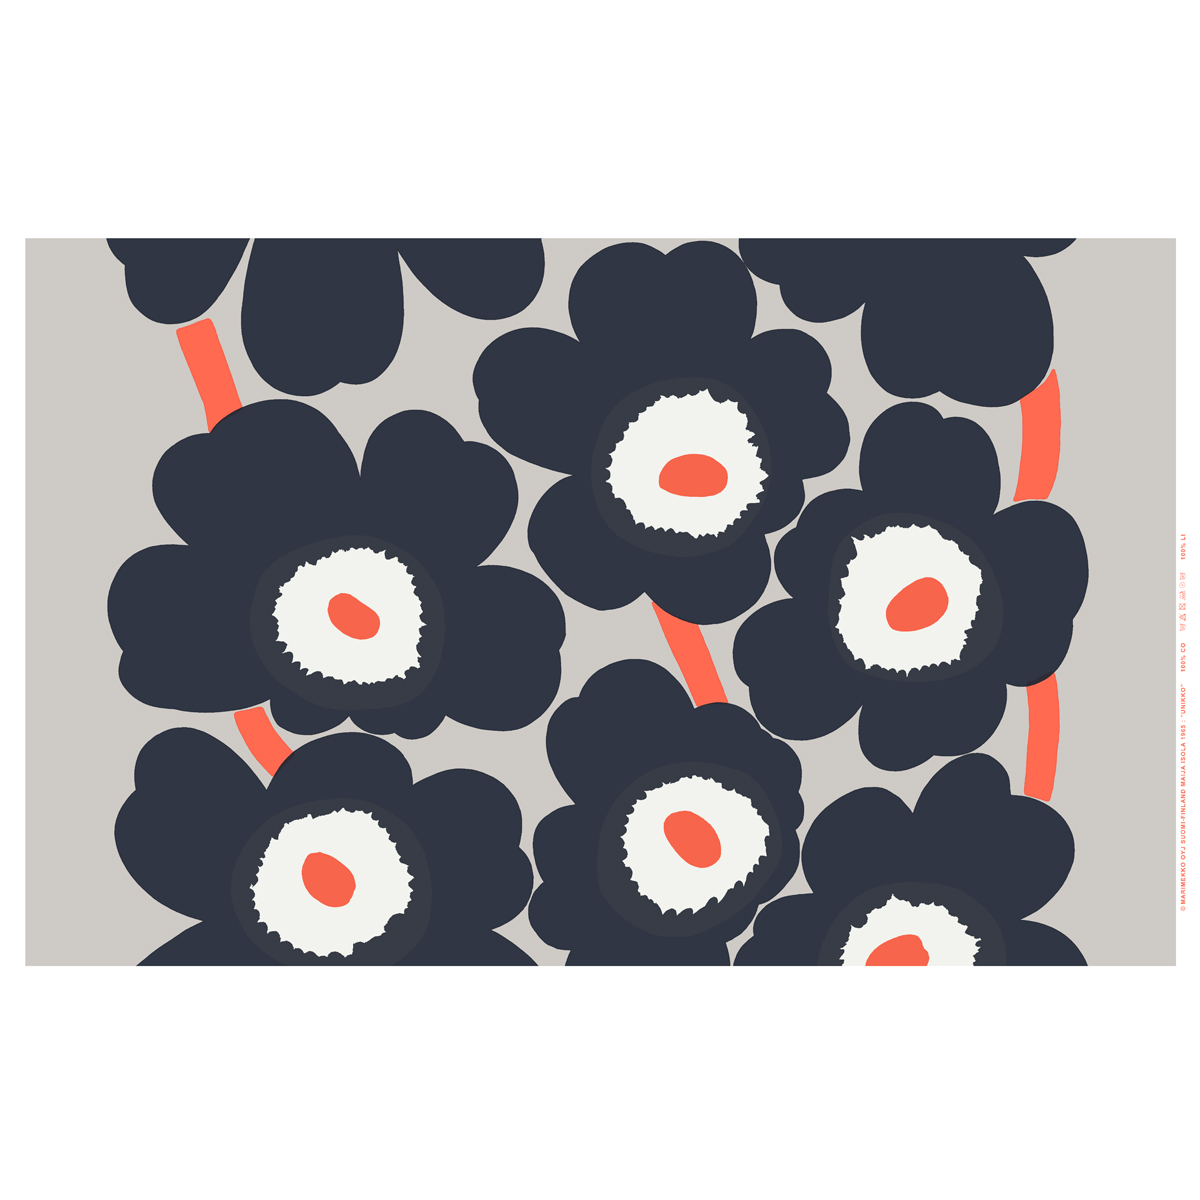 puppy curtain aarnio eero by marimekko curtains orange siirtolapuutarha pin